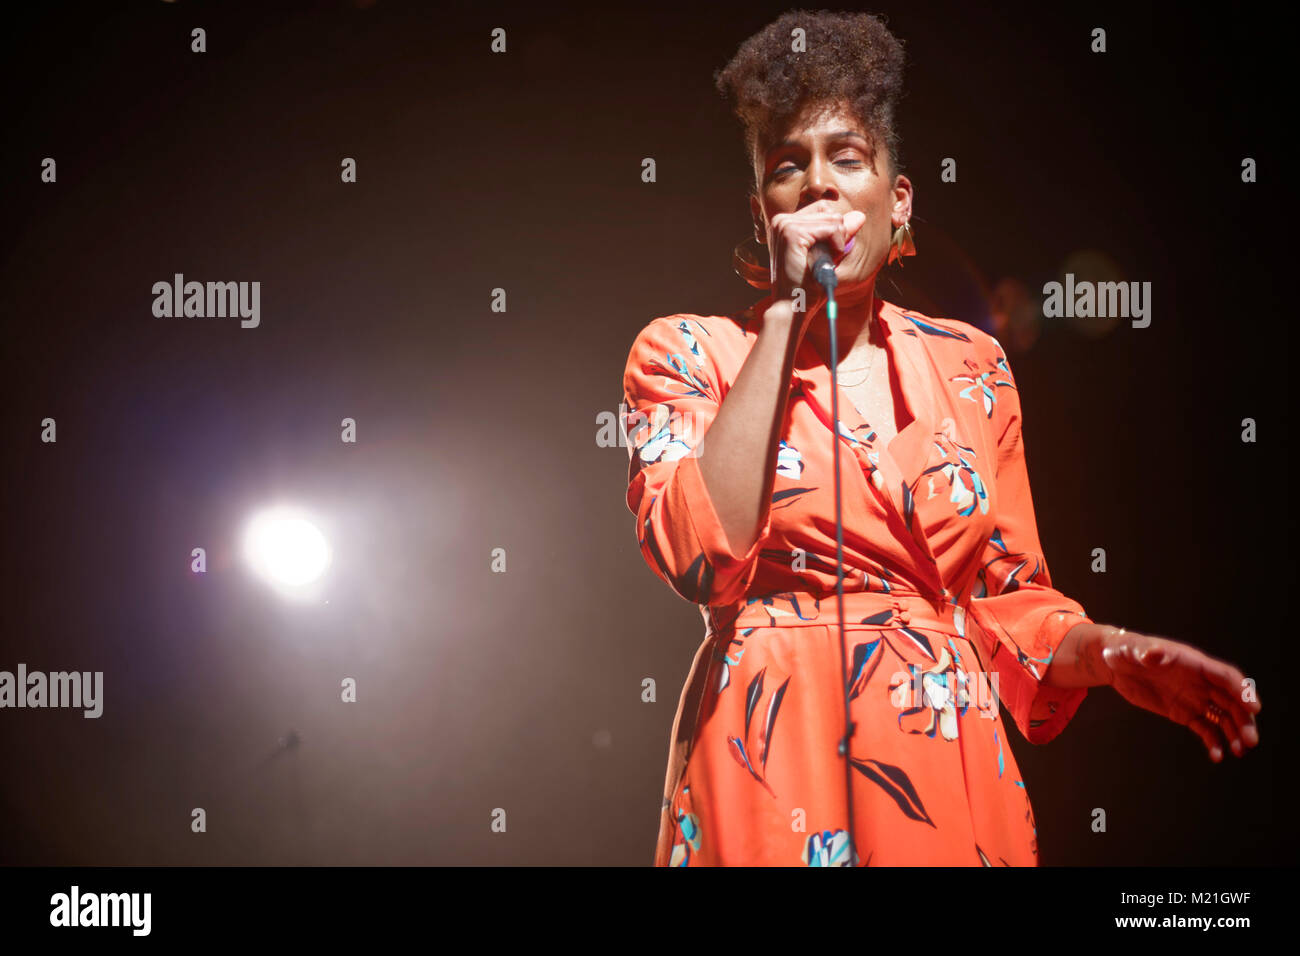 Sandra N' Kake performed in concert at The PLAN at Ris-orangis in Essonne on February 03, 2018 Credit: Véronique Stock Photo